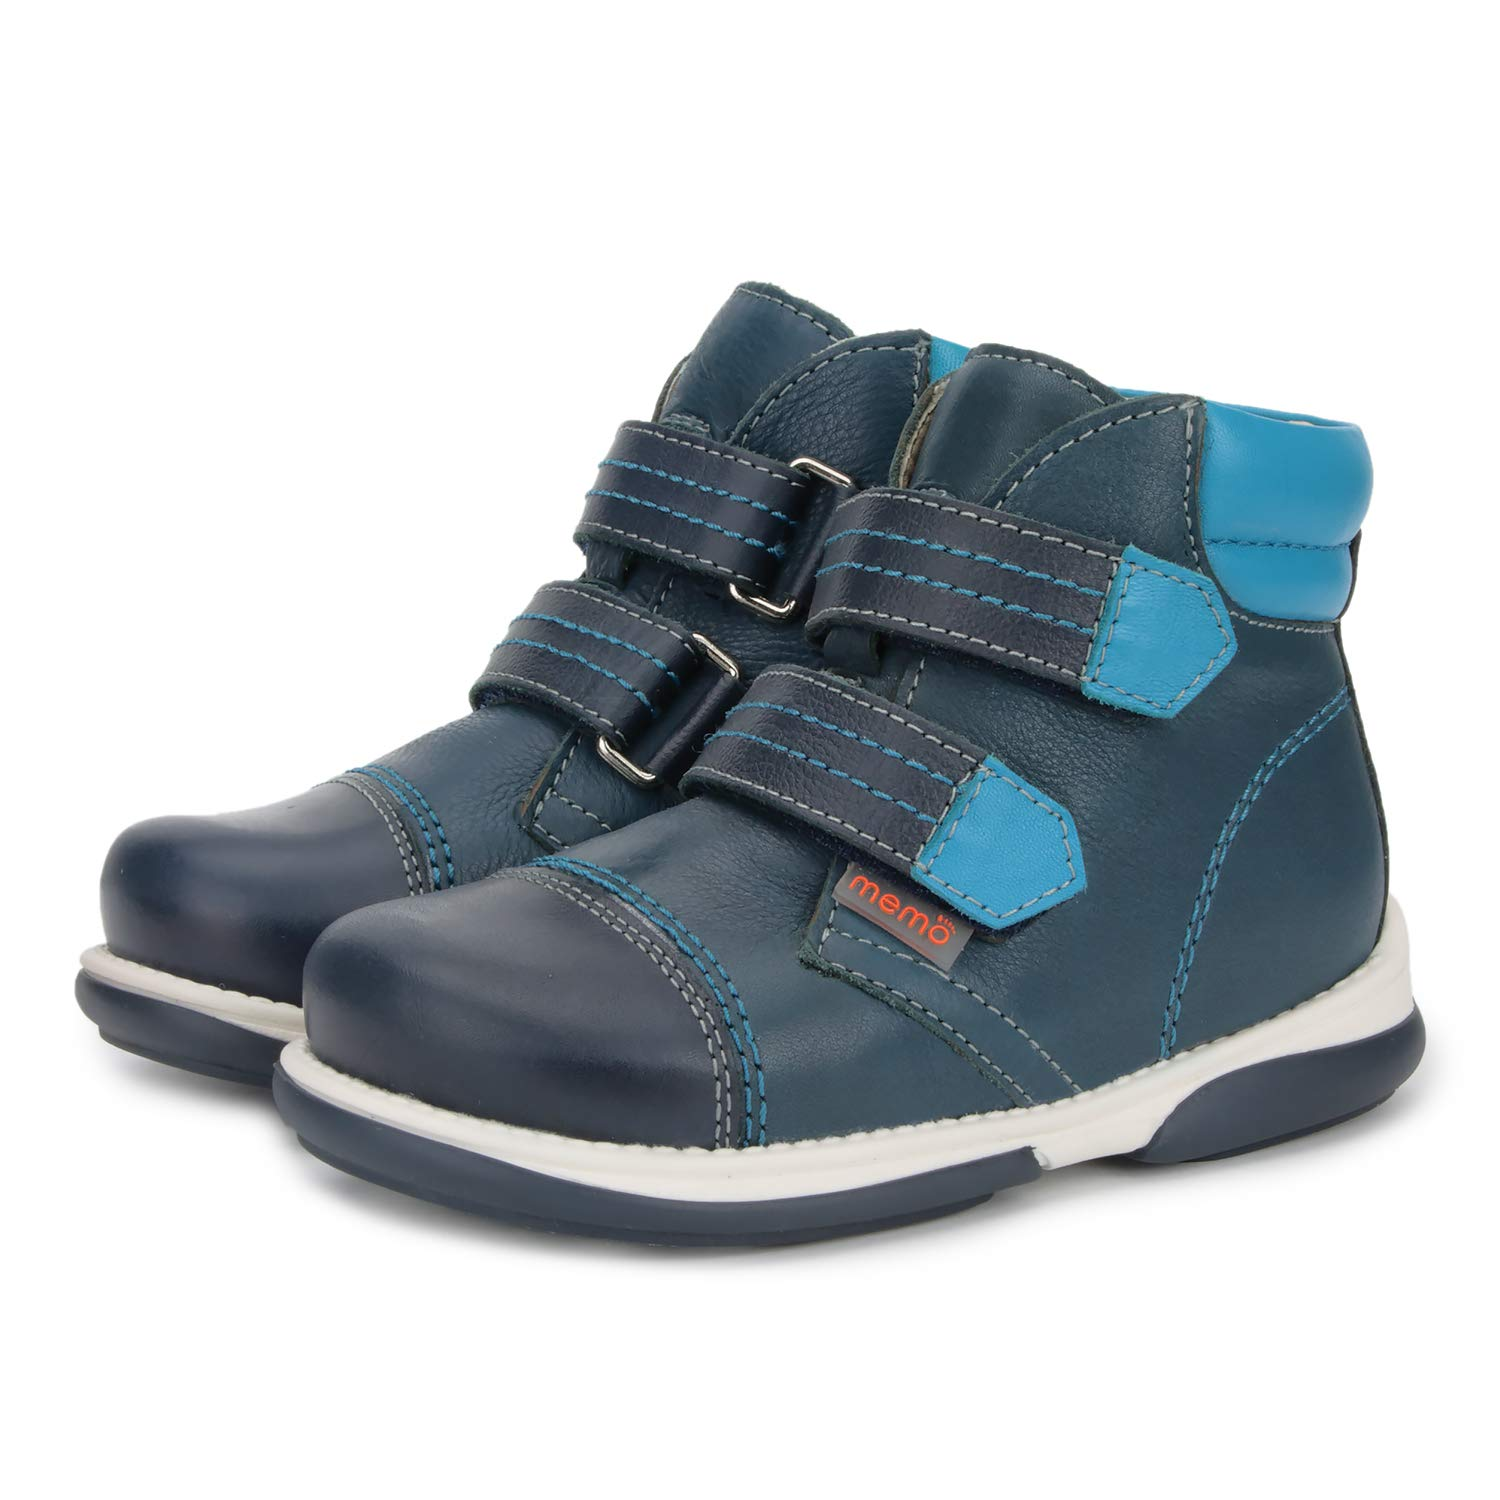 Toddler//Little Kid Memo Alex Boys Corrective Orthopedic High-Top Leather Boot Diagnostic Sole